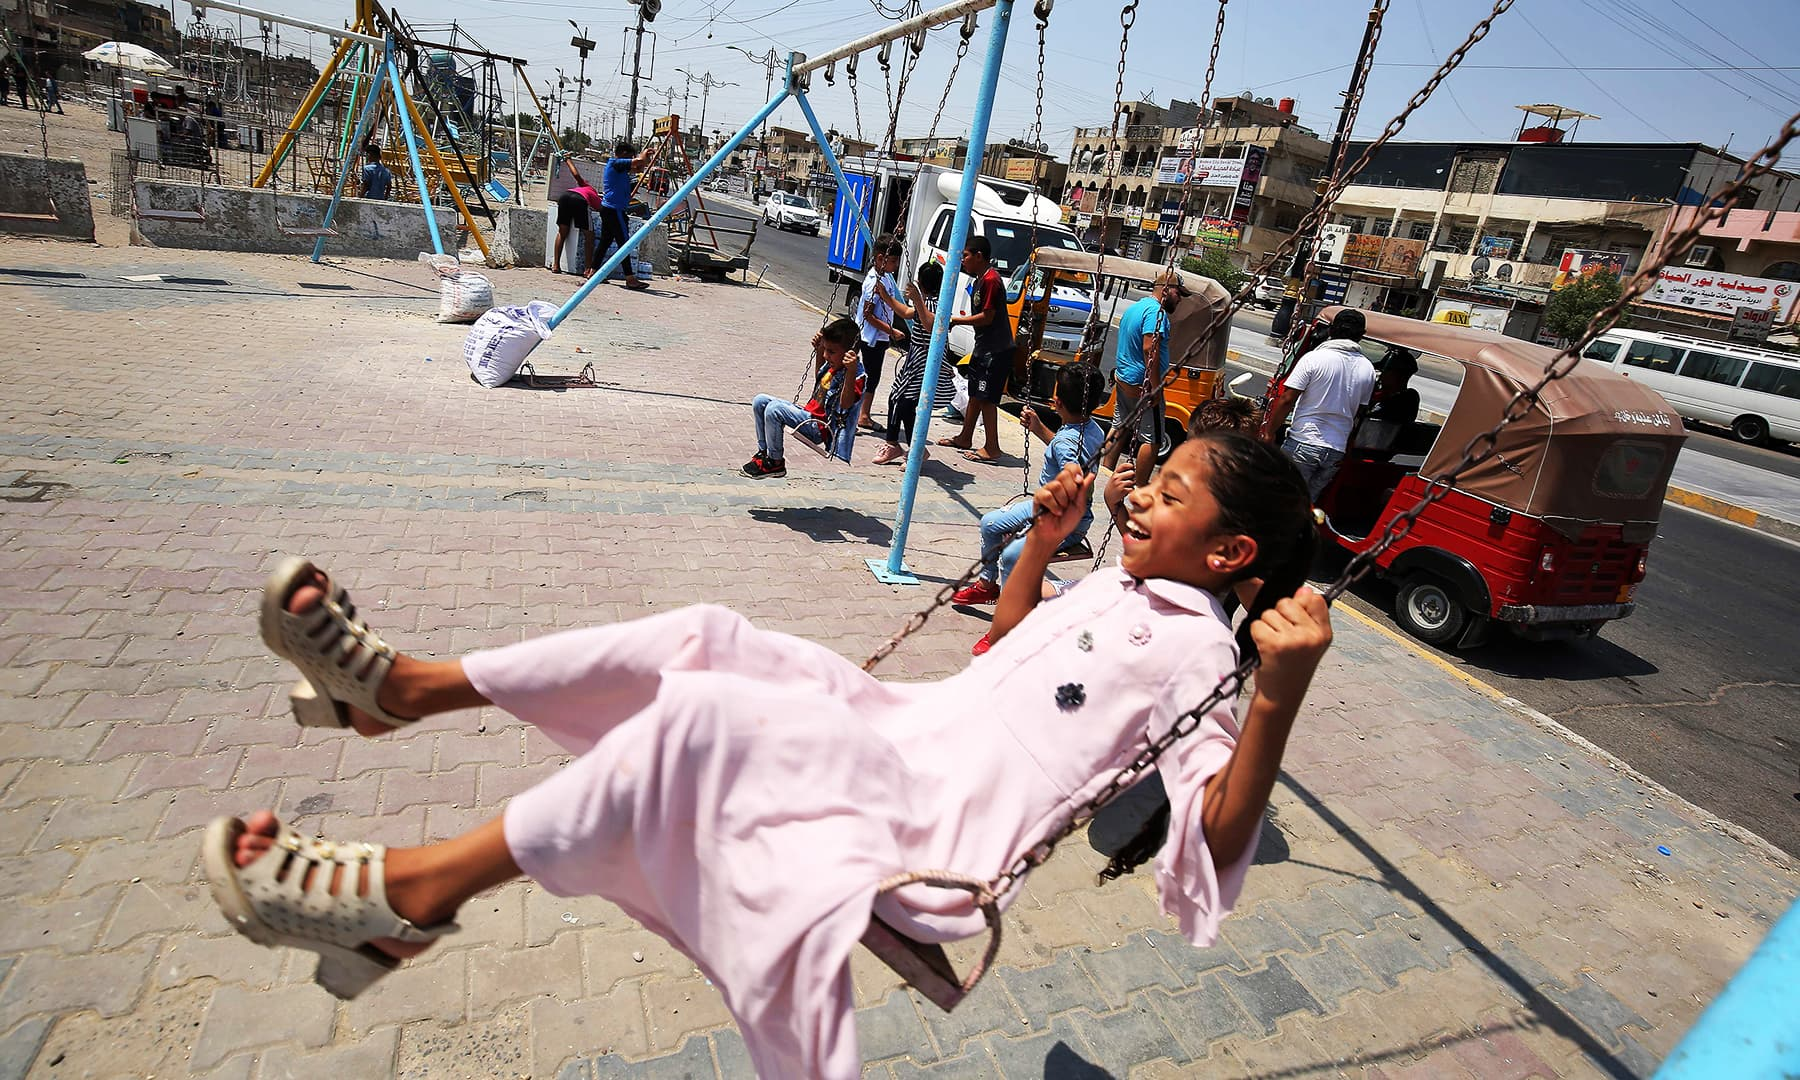 A girl rides on a swing in the Iraqi capital Baghdad's eastern suburb of Sadr City. — AFP